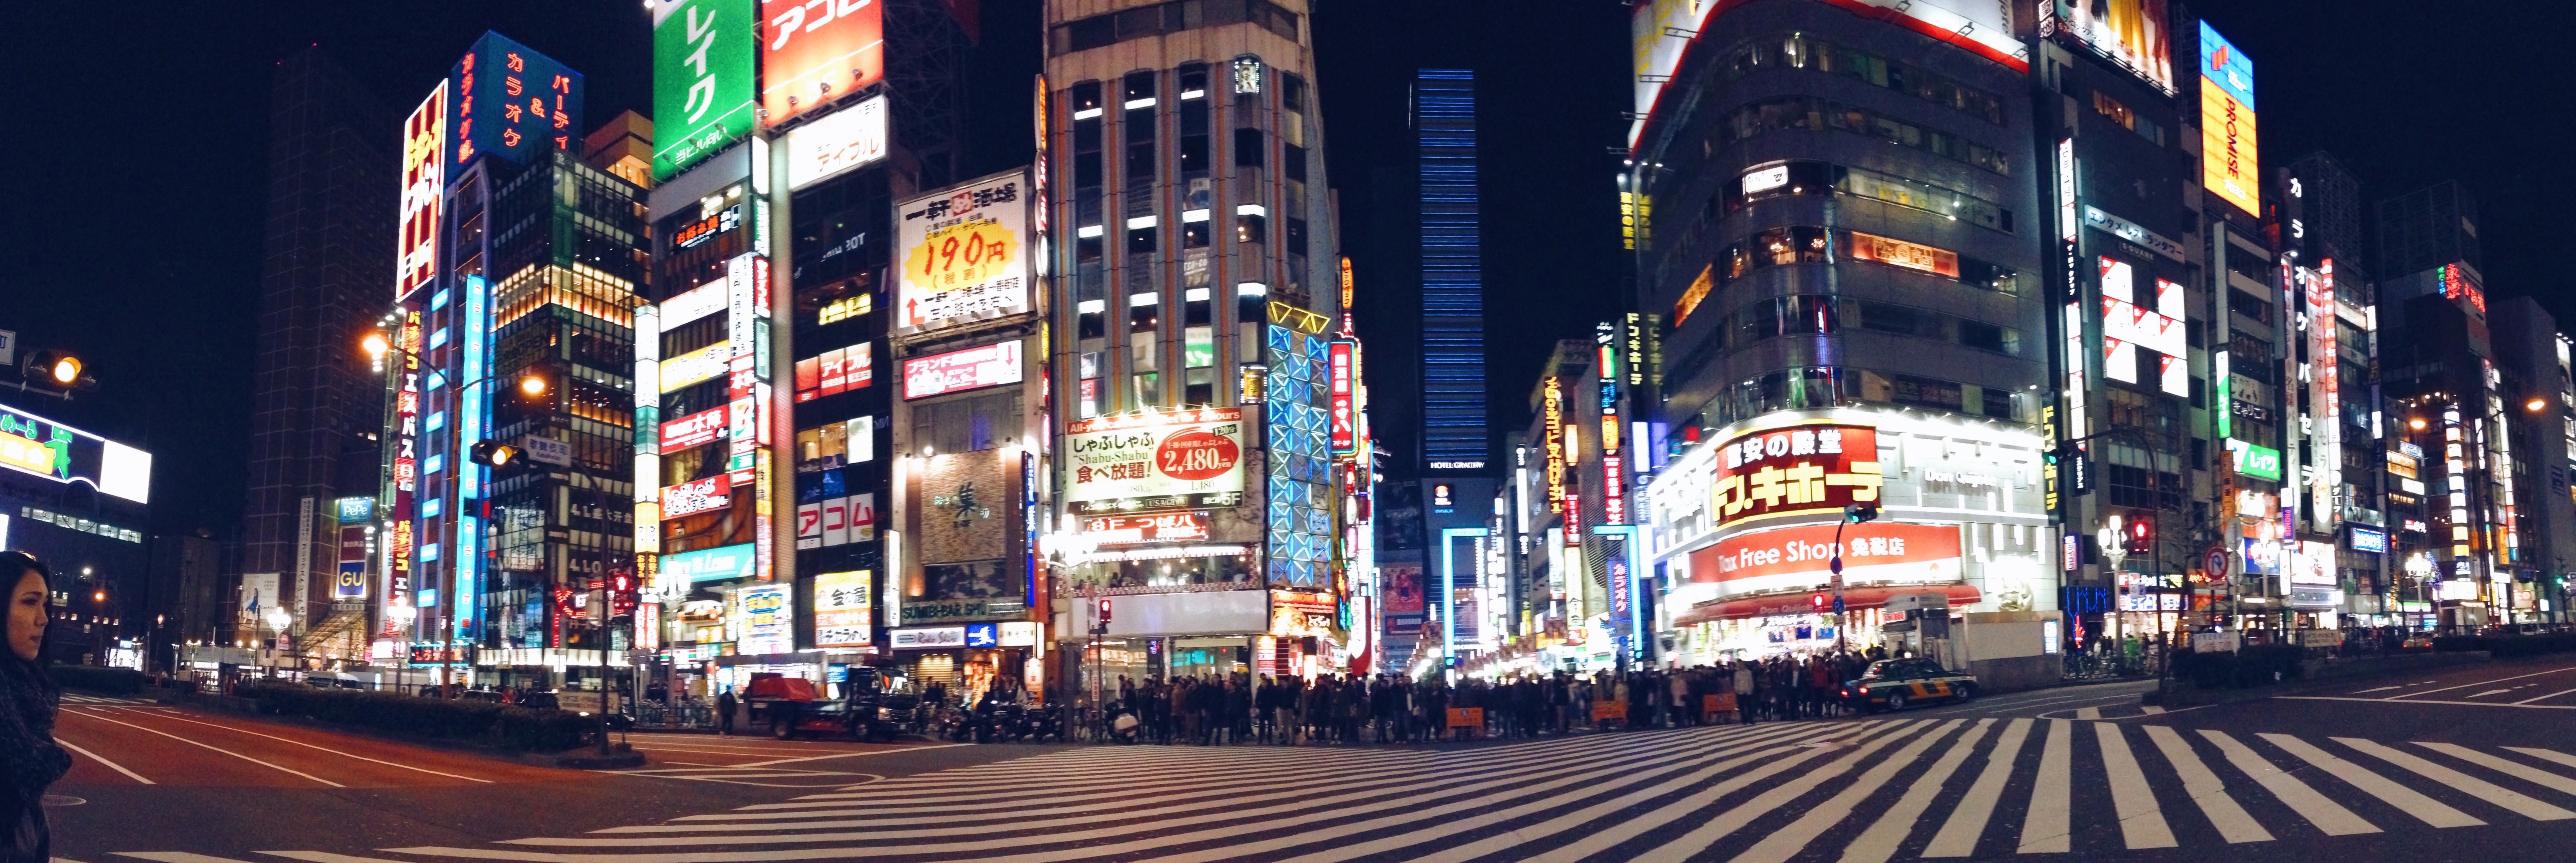 Shinjuku by night